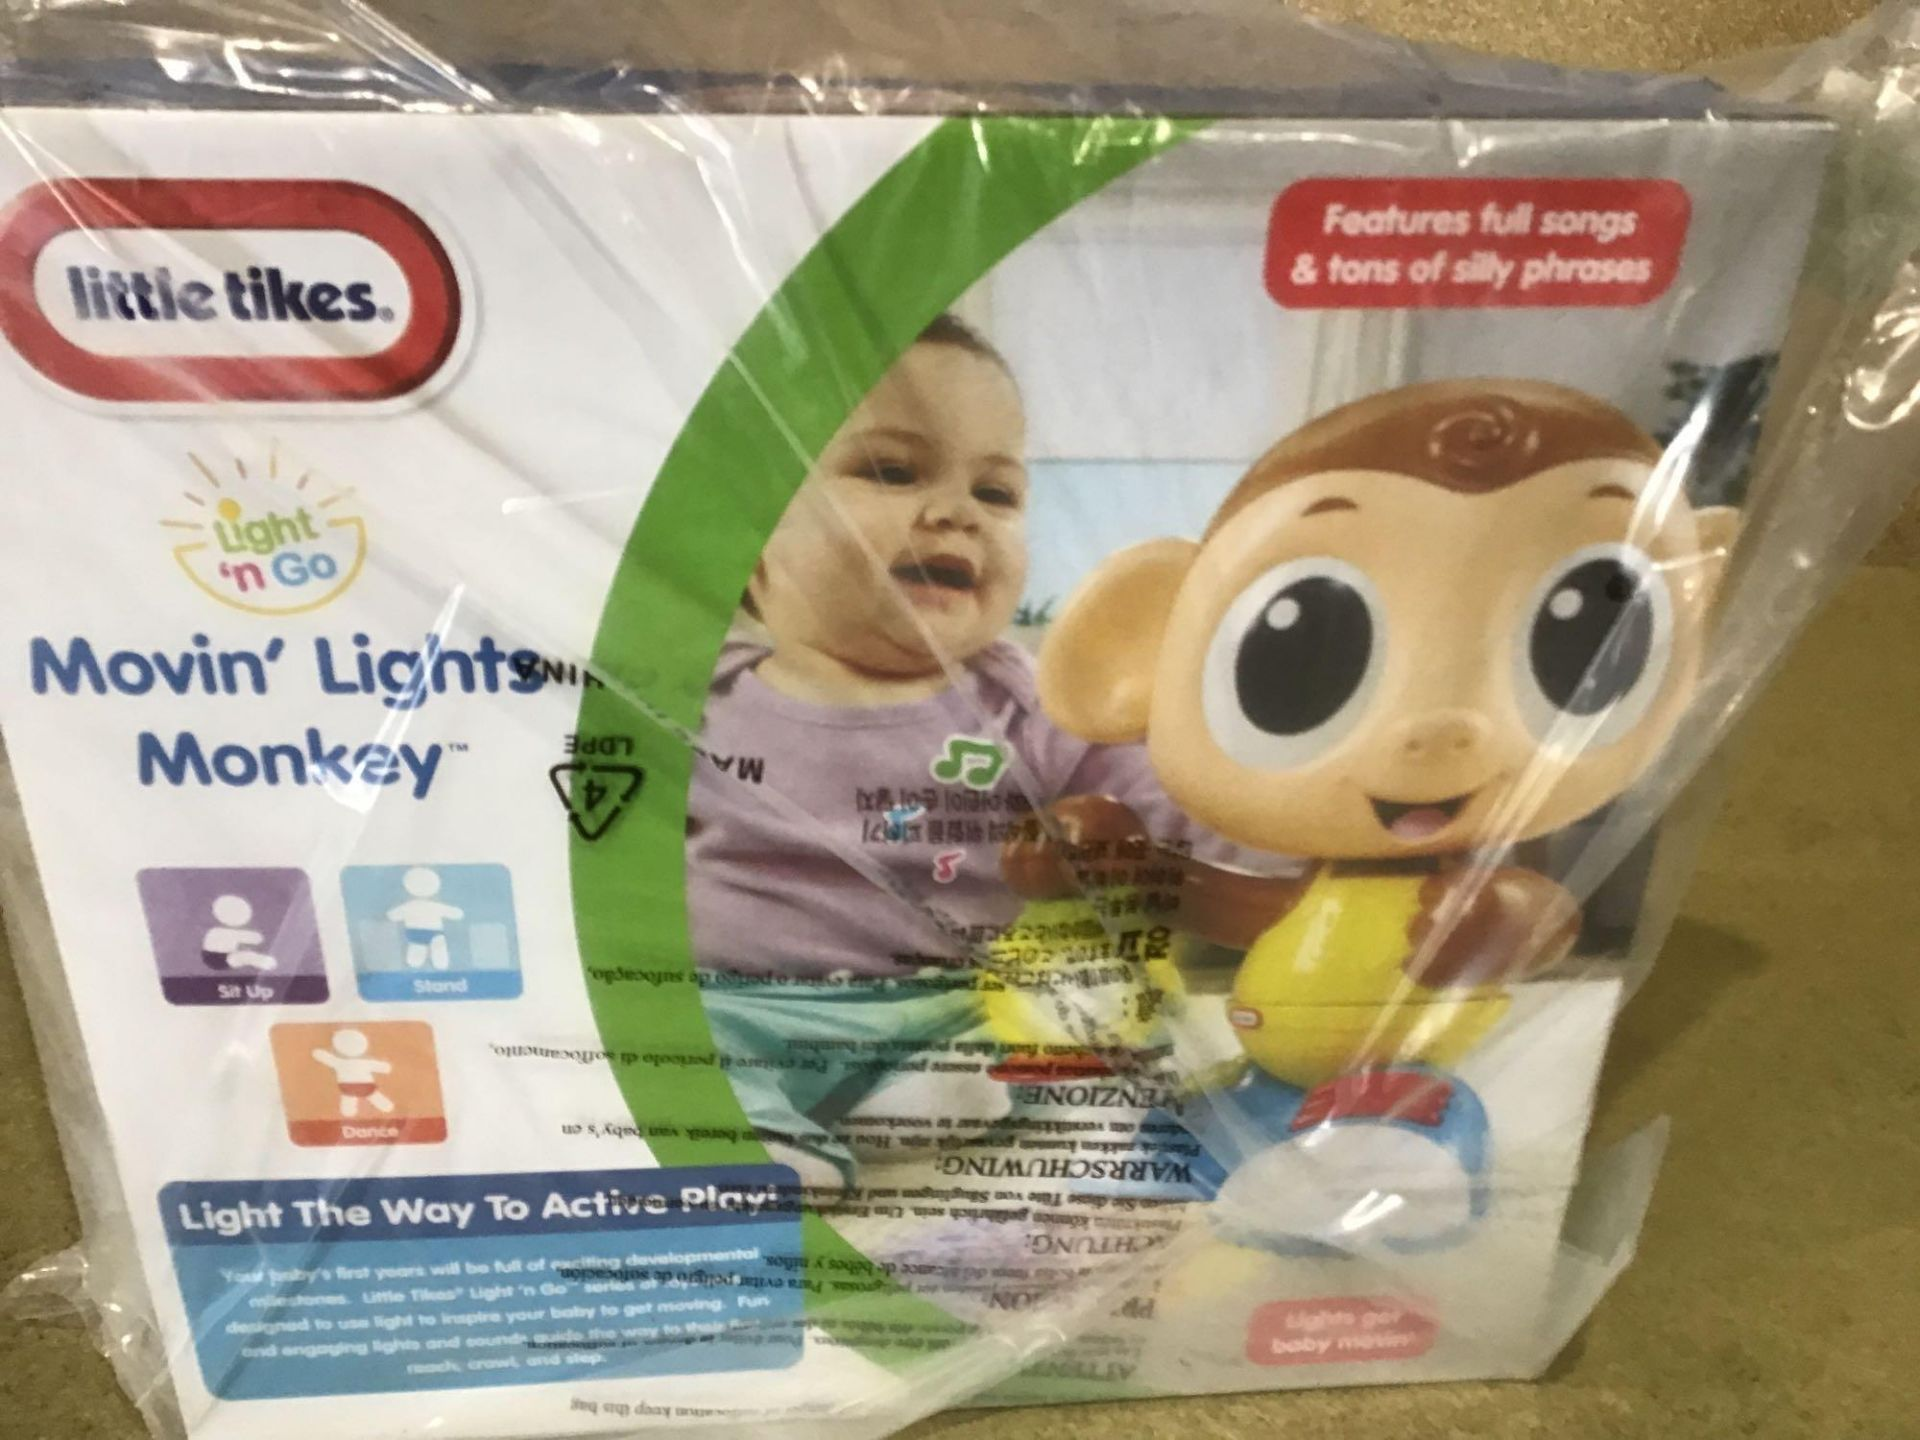 Little Tikes Moving Lights Monkey - £12.00 RRP - Image 3 of 4